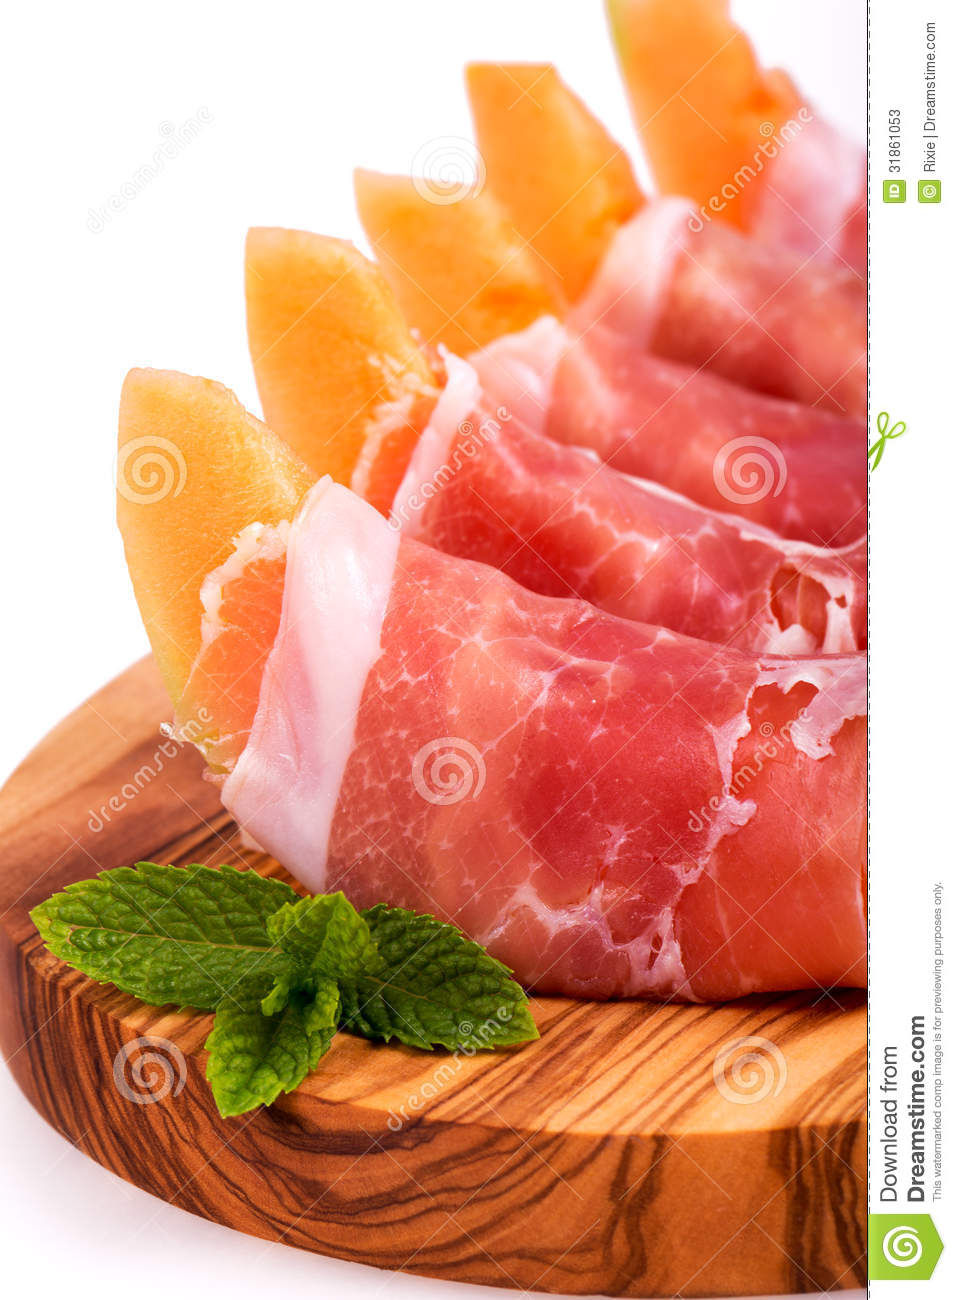 Parma ham and sliced melon starter served on olive wood board over ...